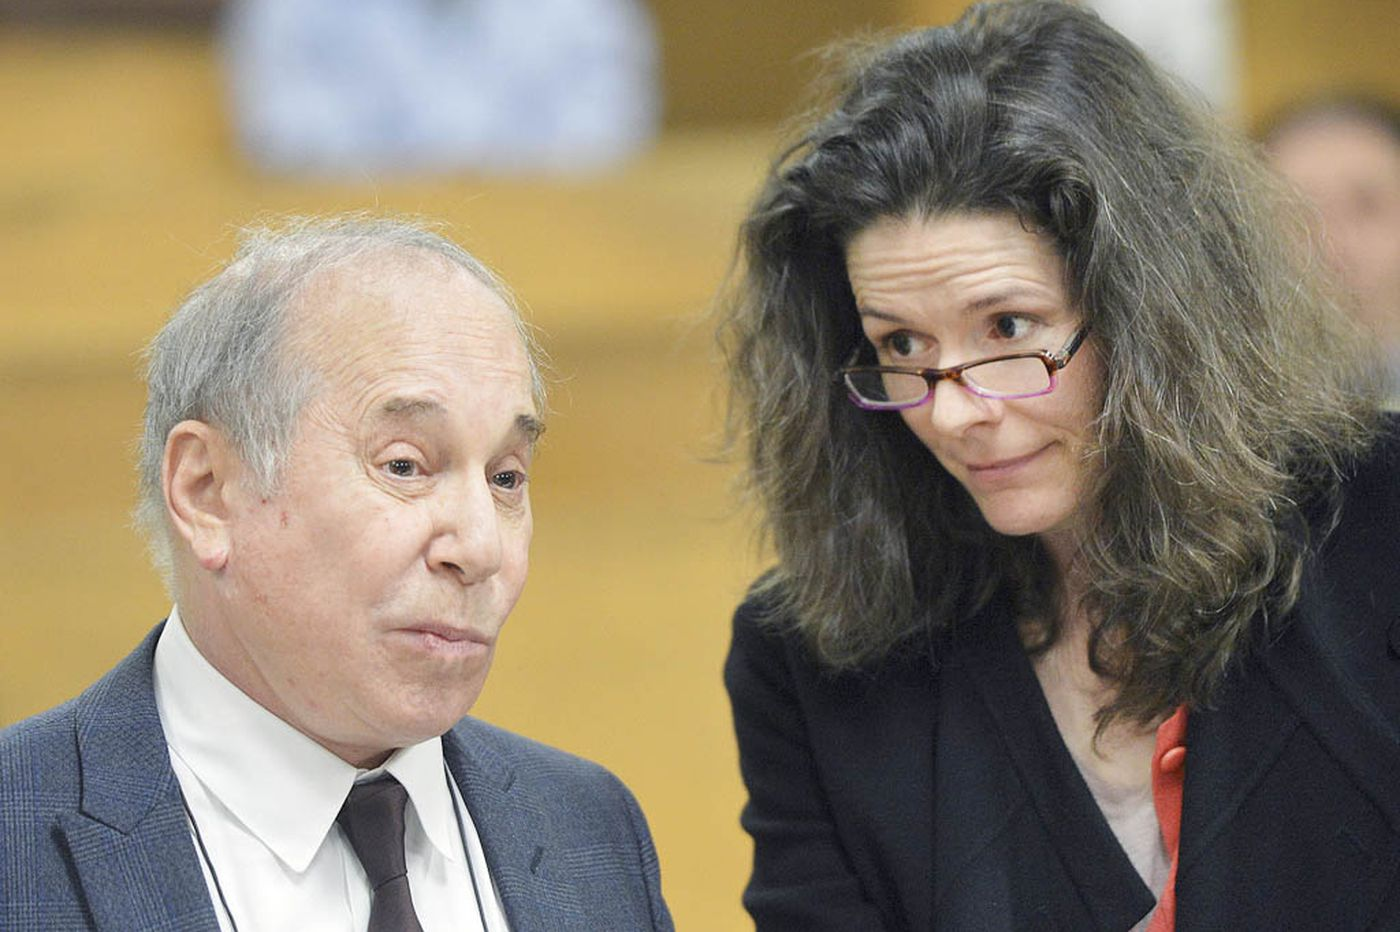 Paul Simon, wife Edie Brickell fight, make up, go courting